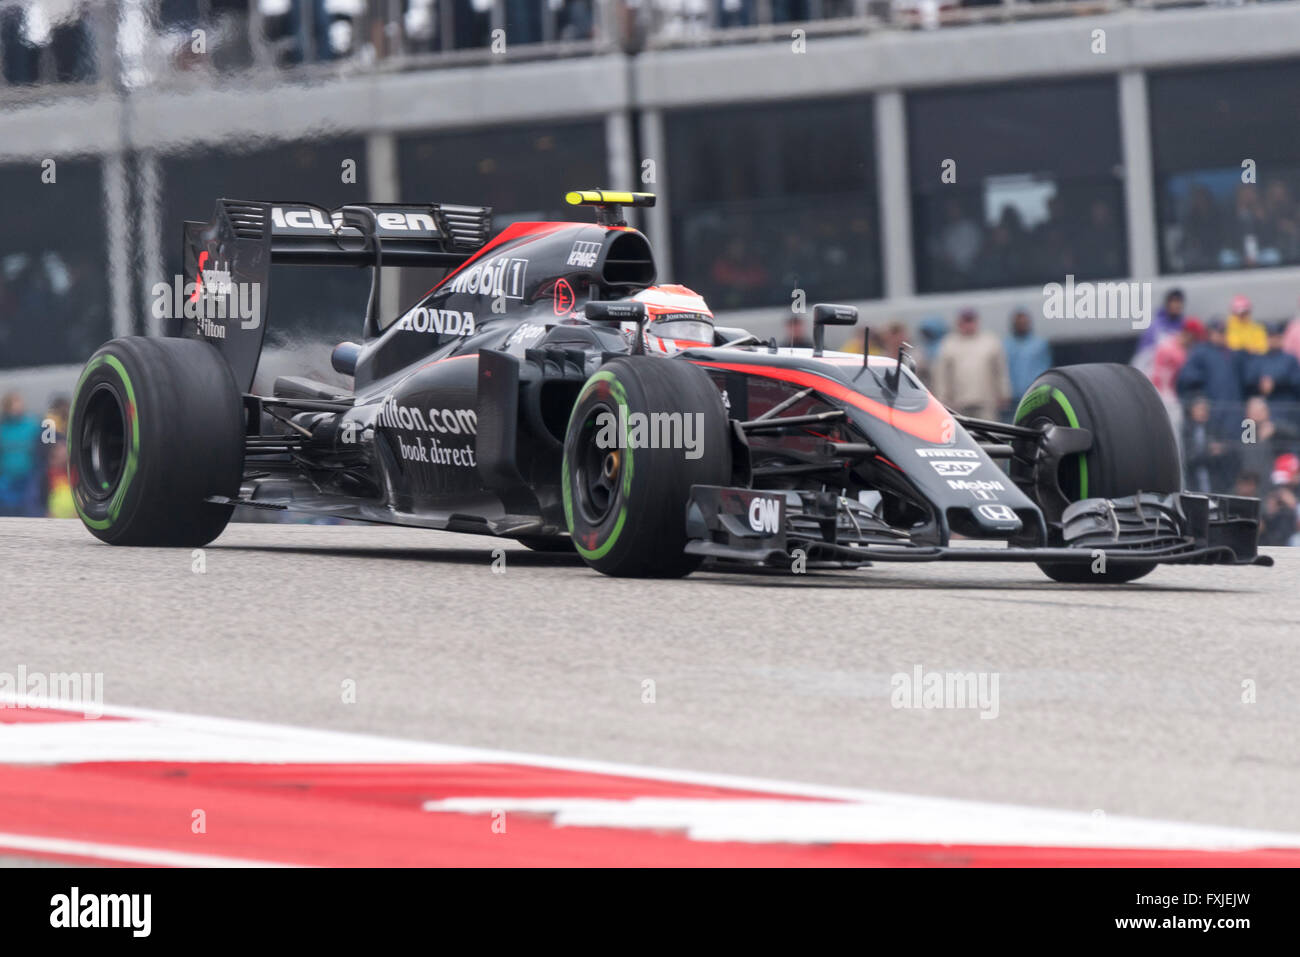 Jenson Button of McLaren Honda seen during the 2015 United States Formula 1 Grand Prix at Circuit of the Americas, - Stock Image